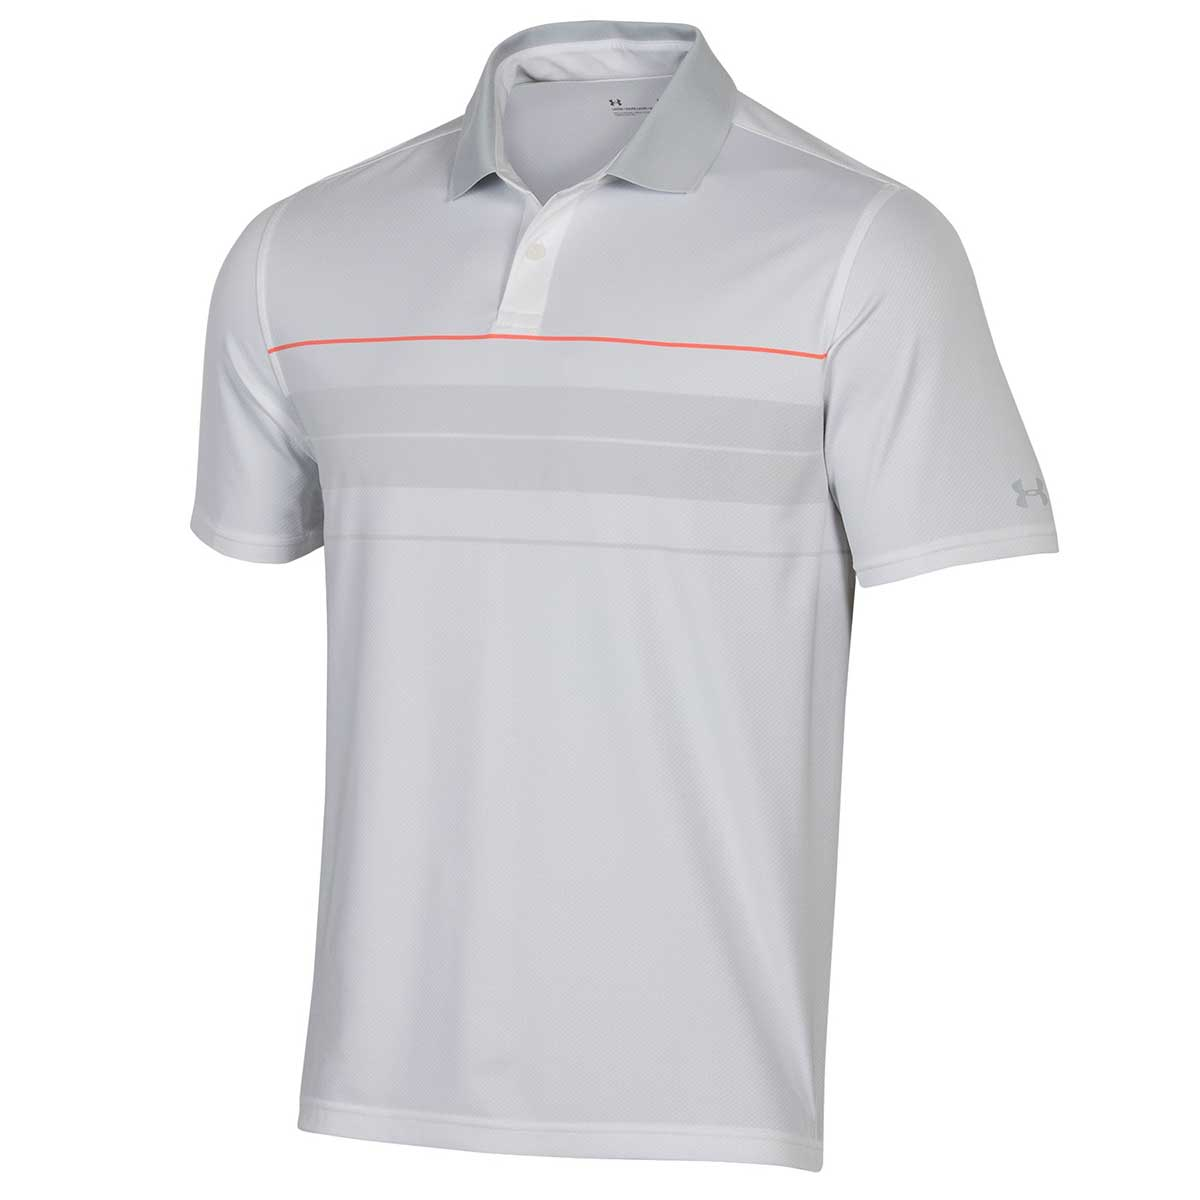 Under Armour Men's Performance Chest Stripe Polo